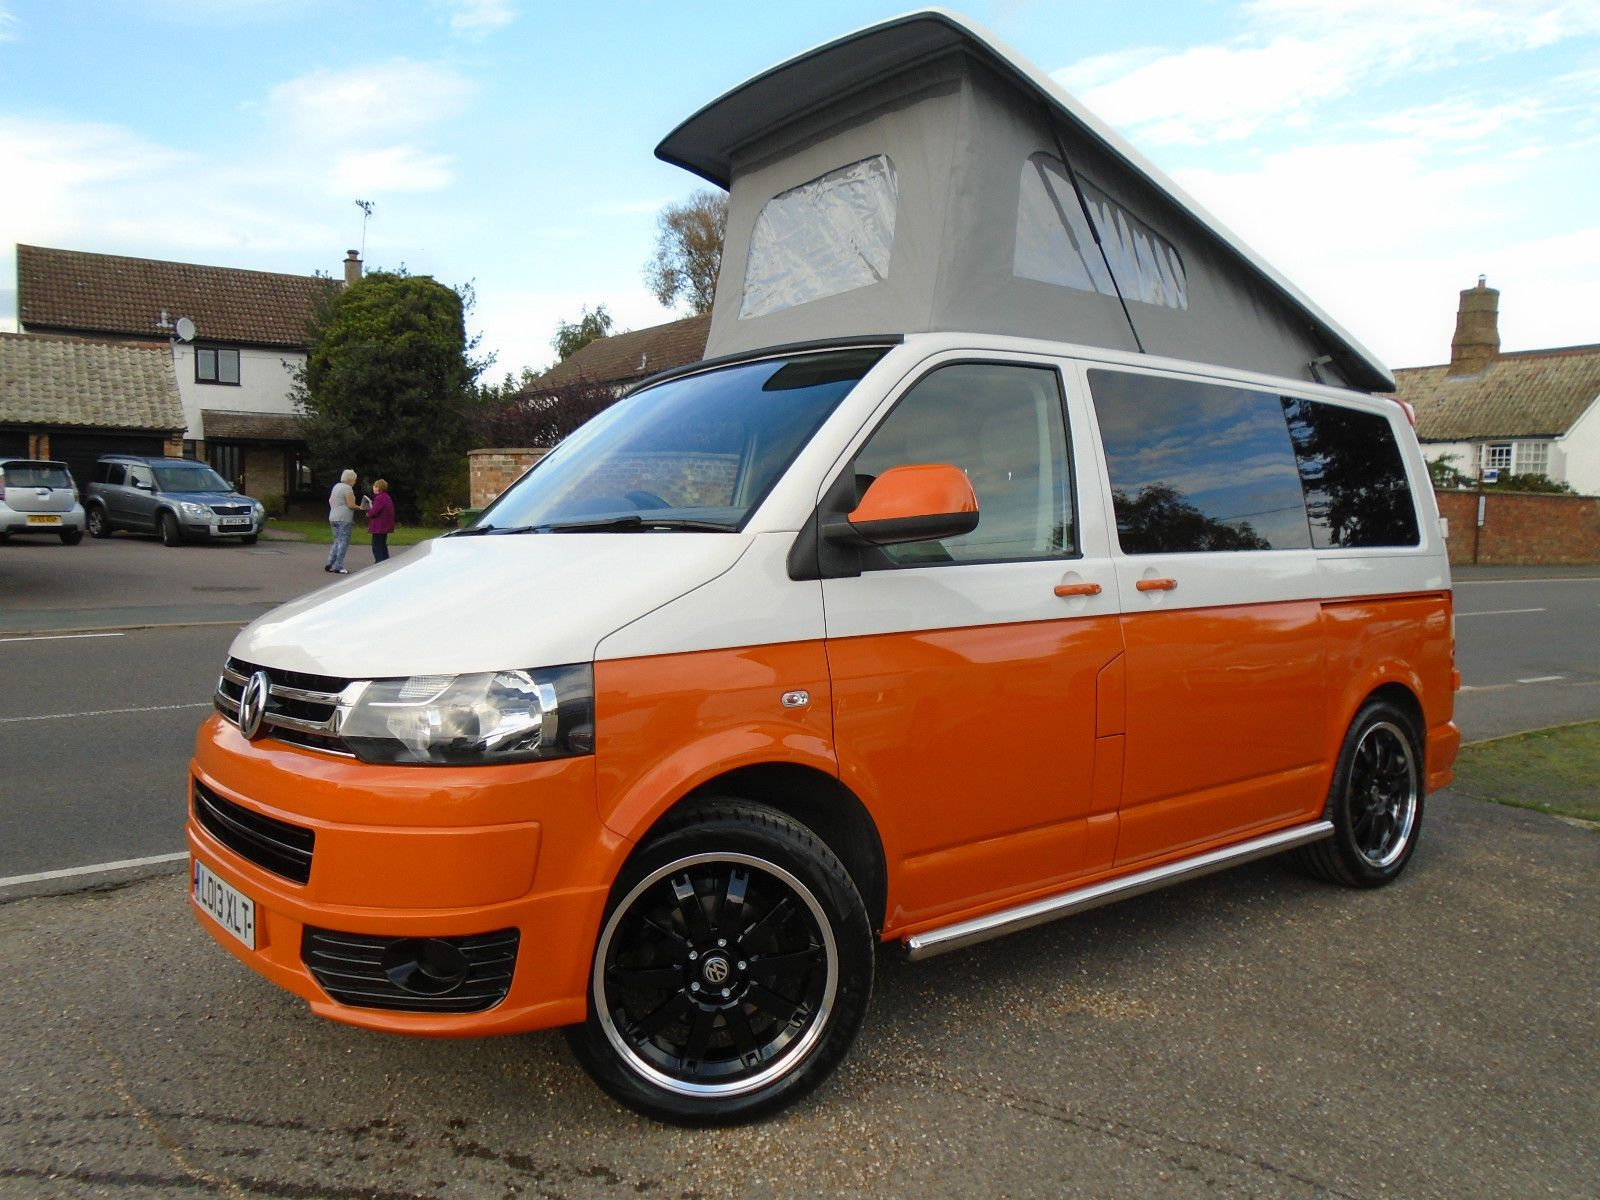 2013 Volkswagen Transporter T5 A C 102ps Brand New Retro Camper Van Conversion